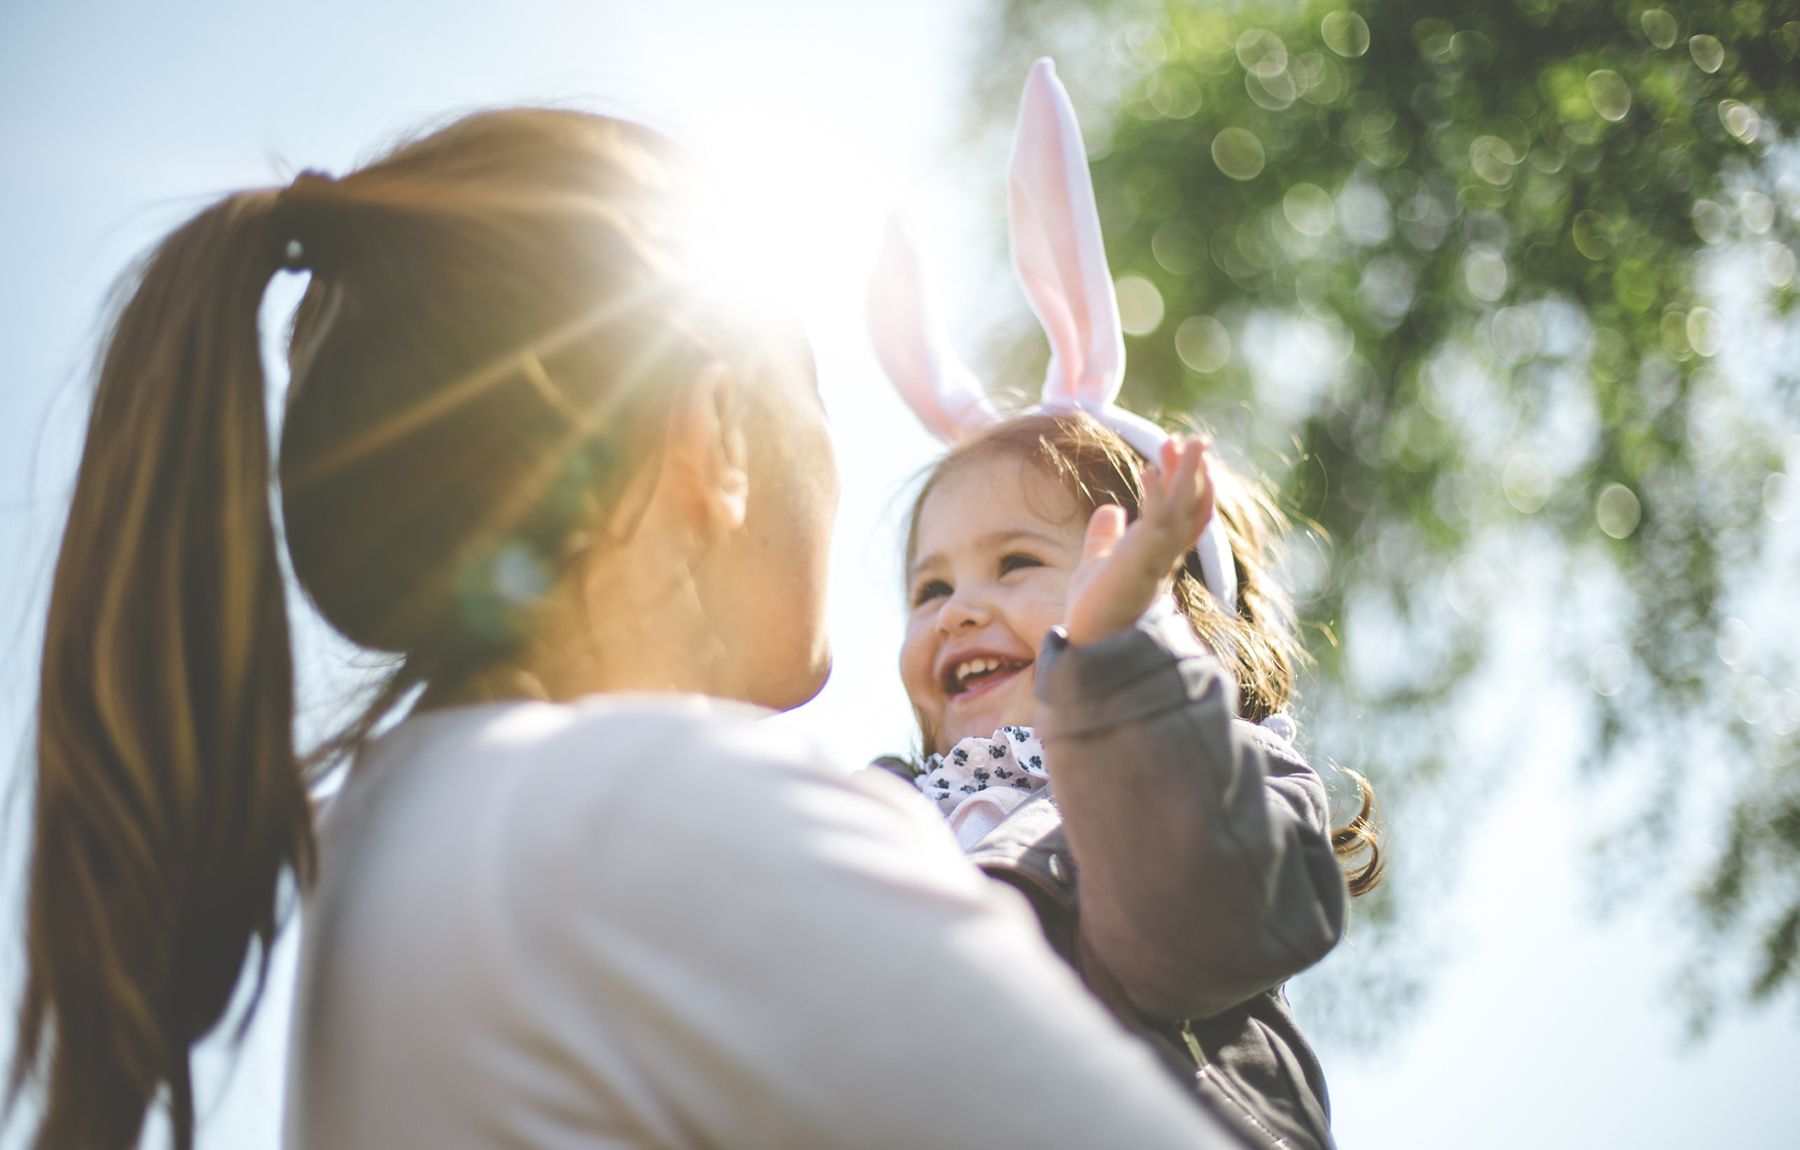 5 Questions to Help Prepare for Guests on Easter